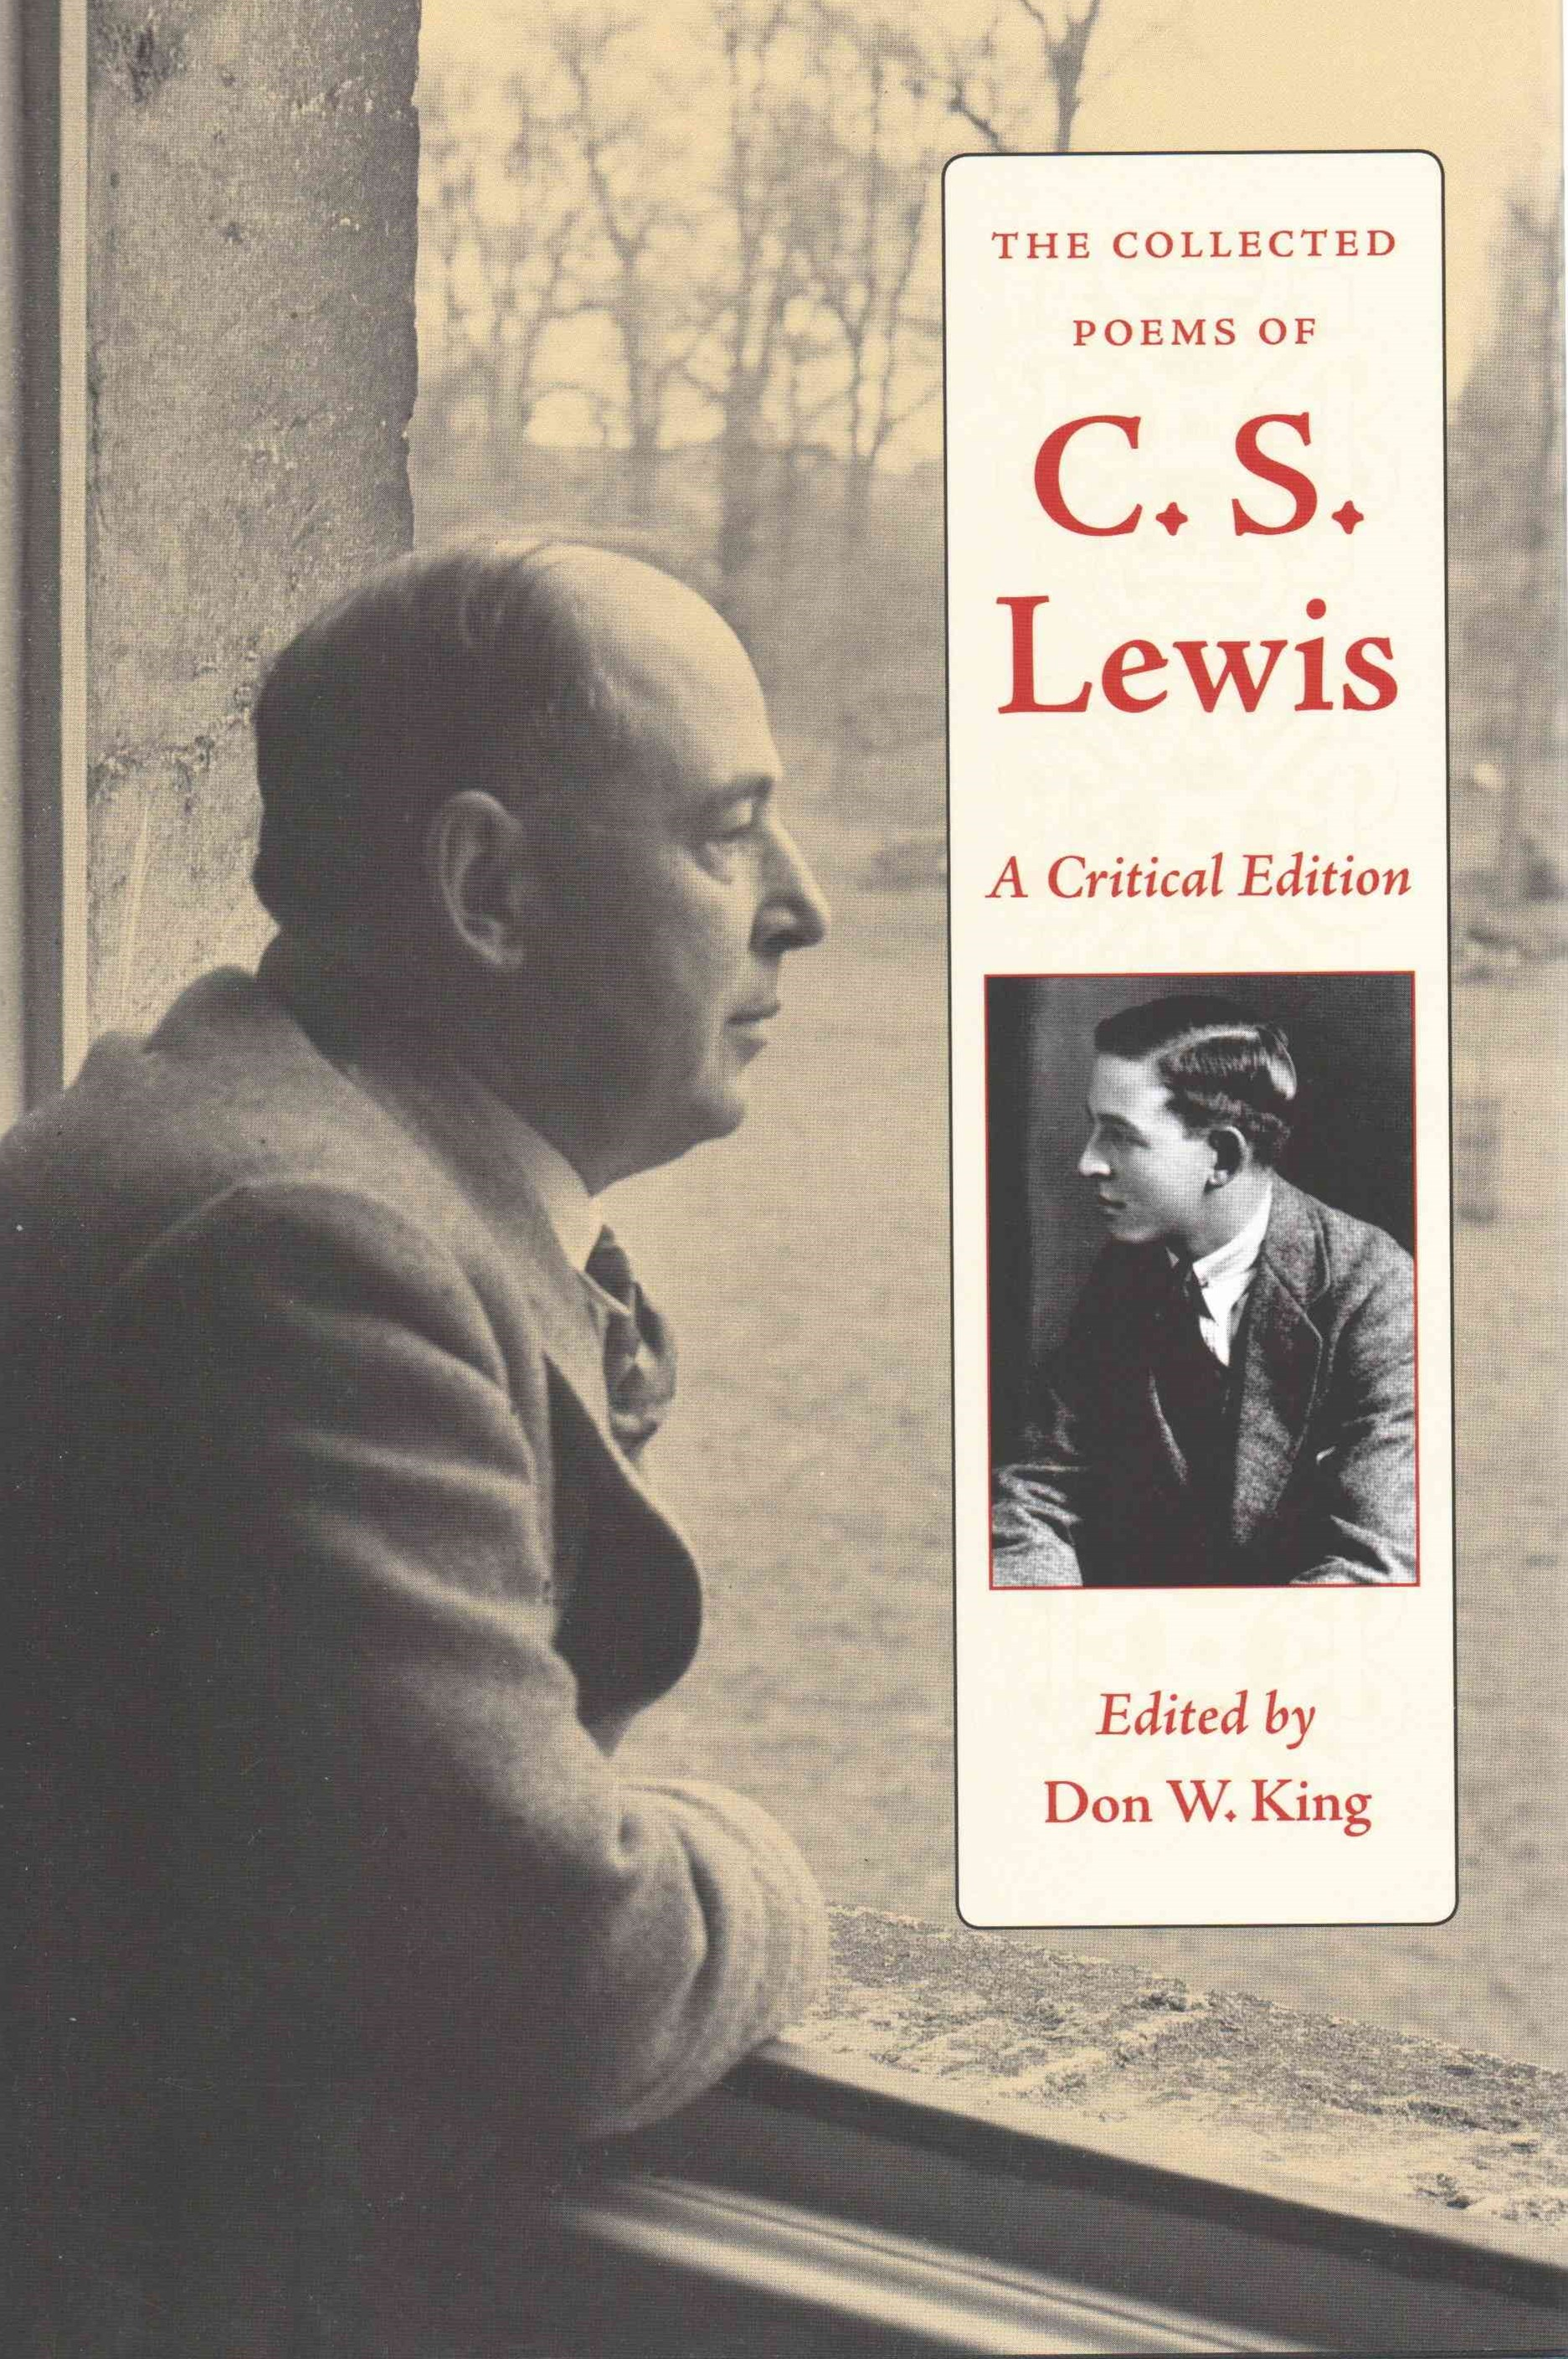 The Collected Poems of C.S. Lewis